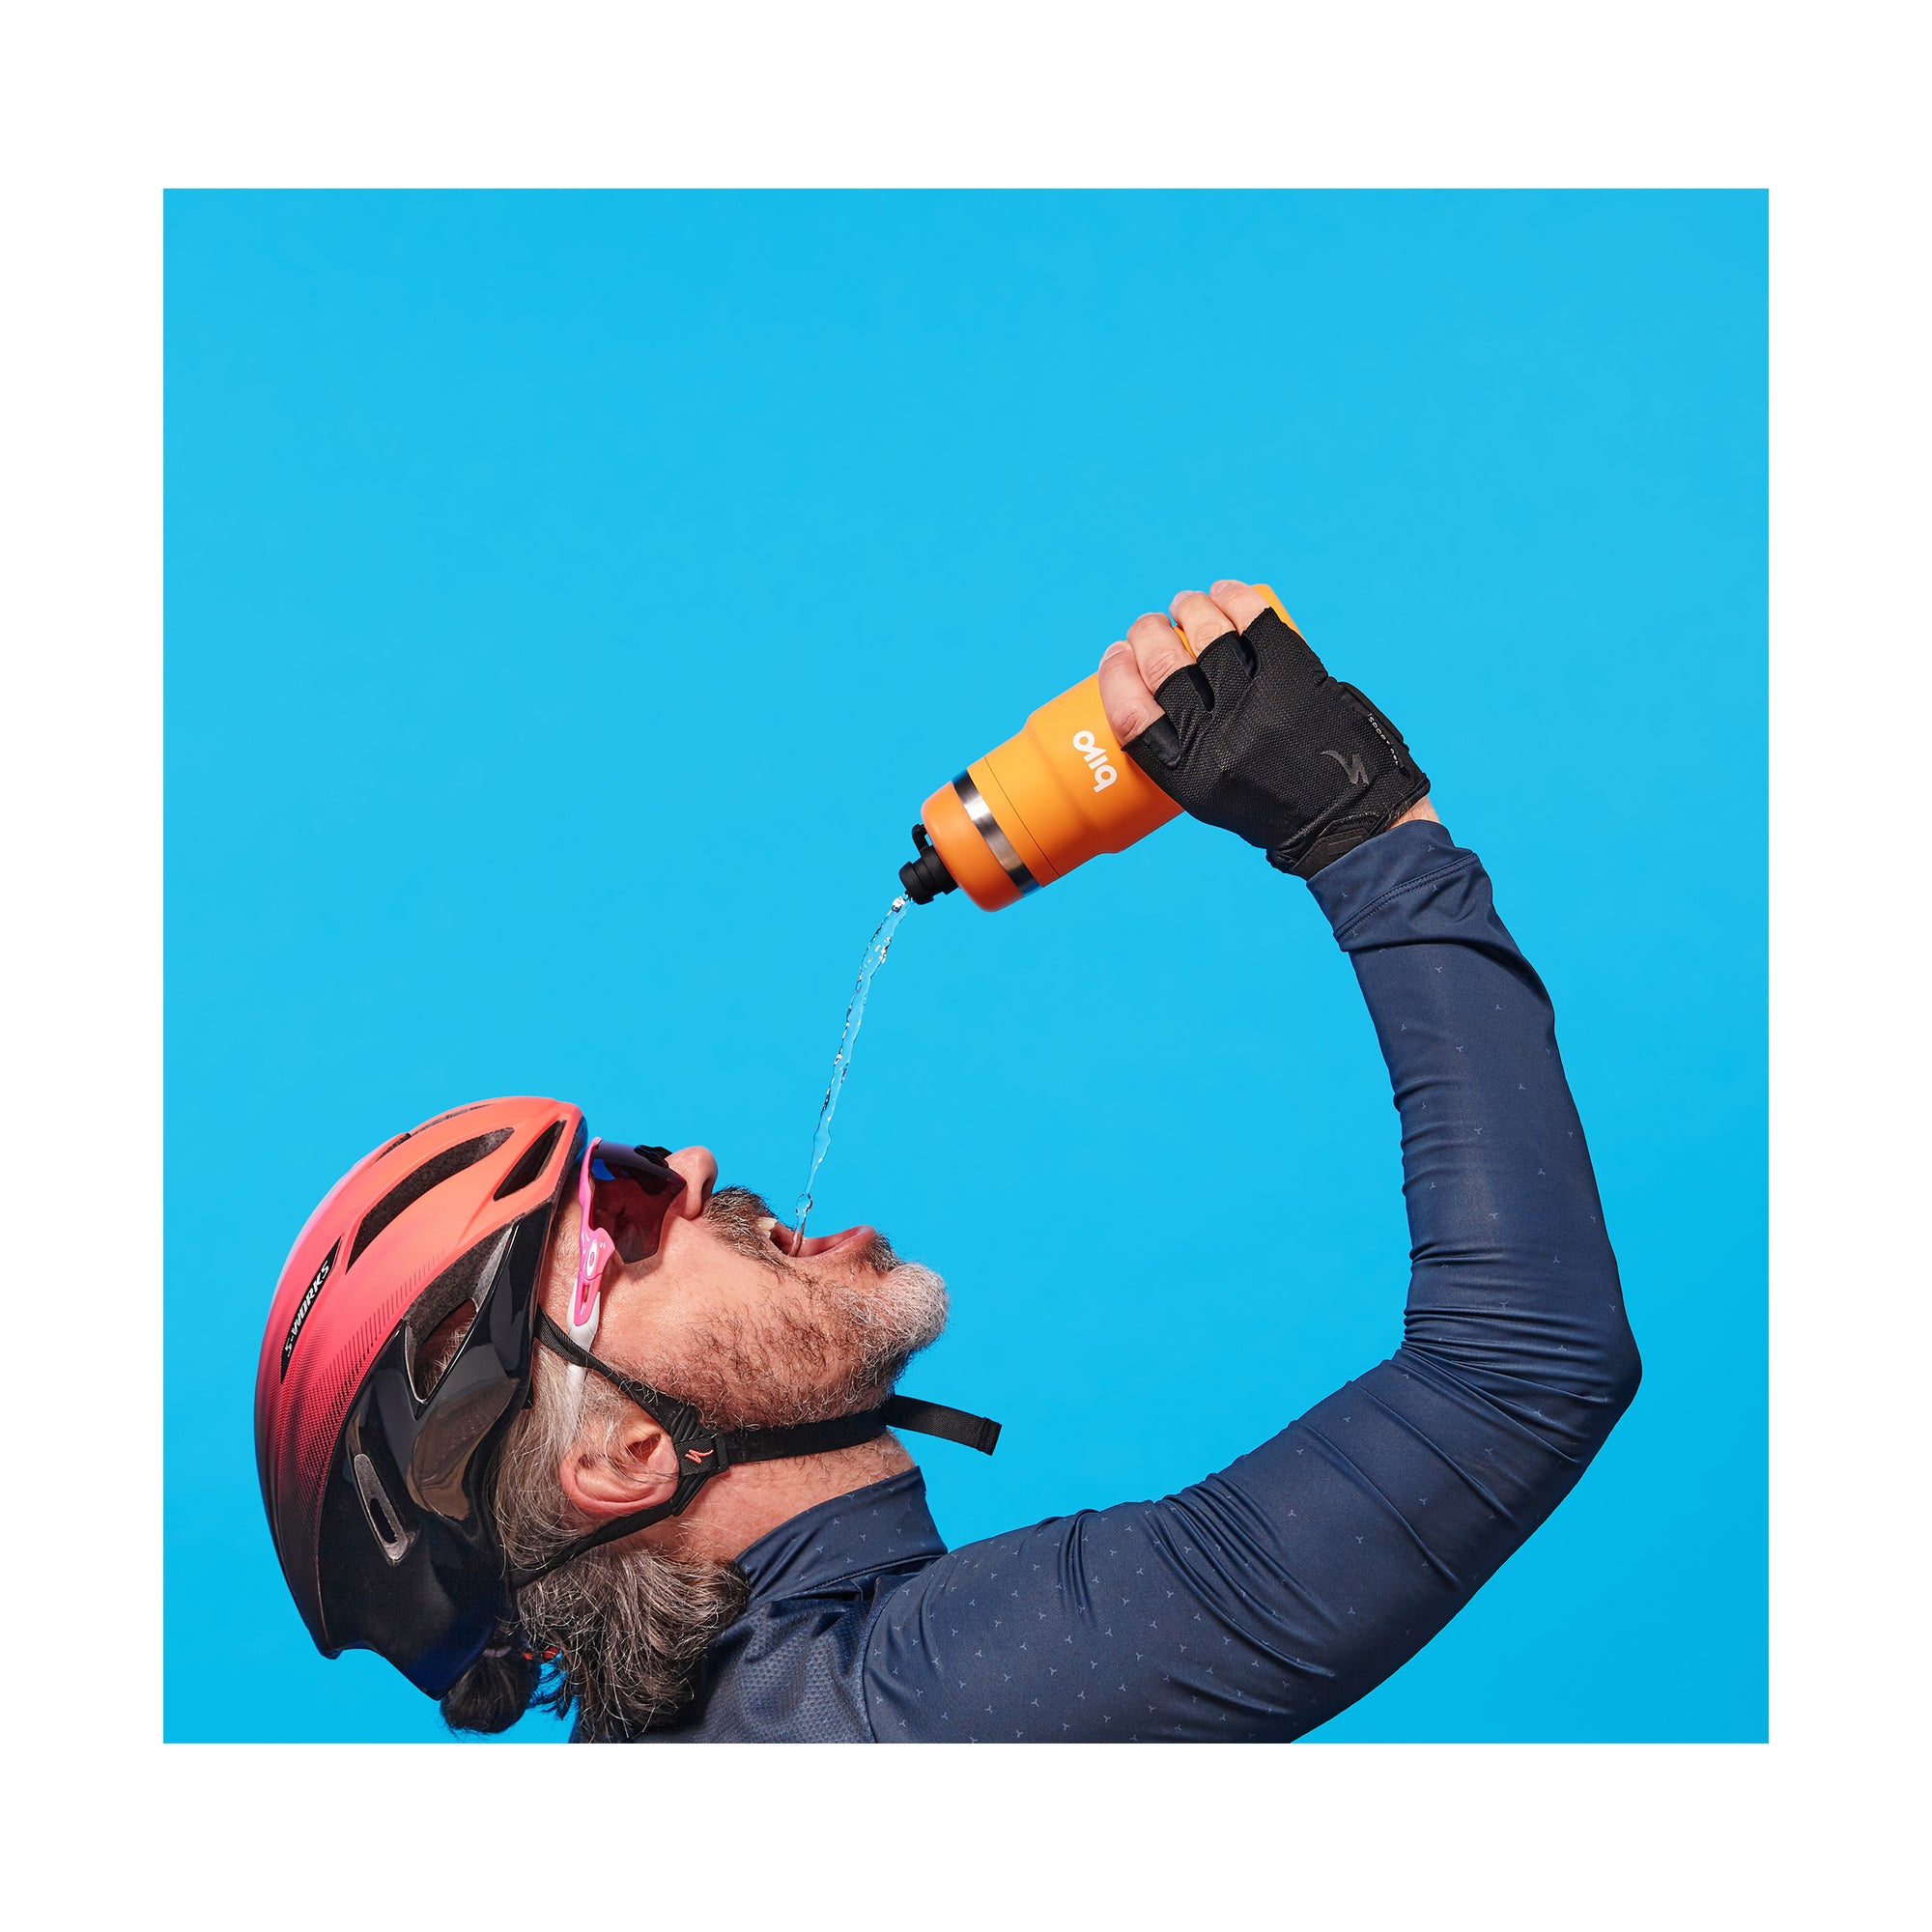 Bike rider drinking from a Bivo One stainless steel cycling bottle with a flow-rate fit for astronauts. Built so you never have to experience the taste of plastic or mold again. Clean taste.